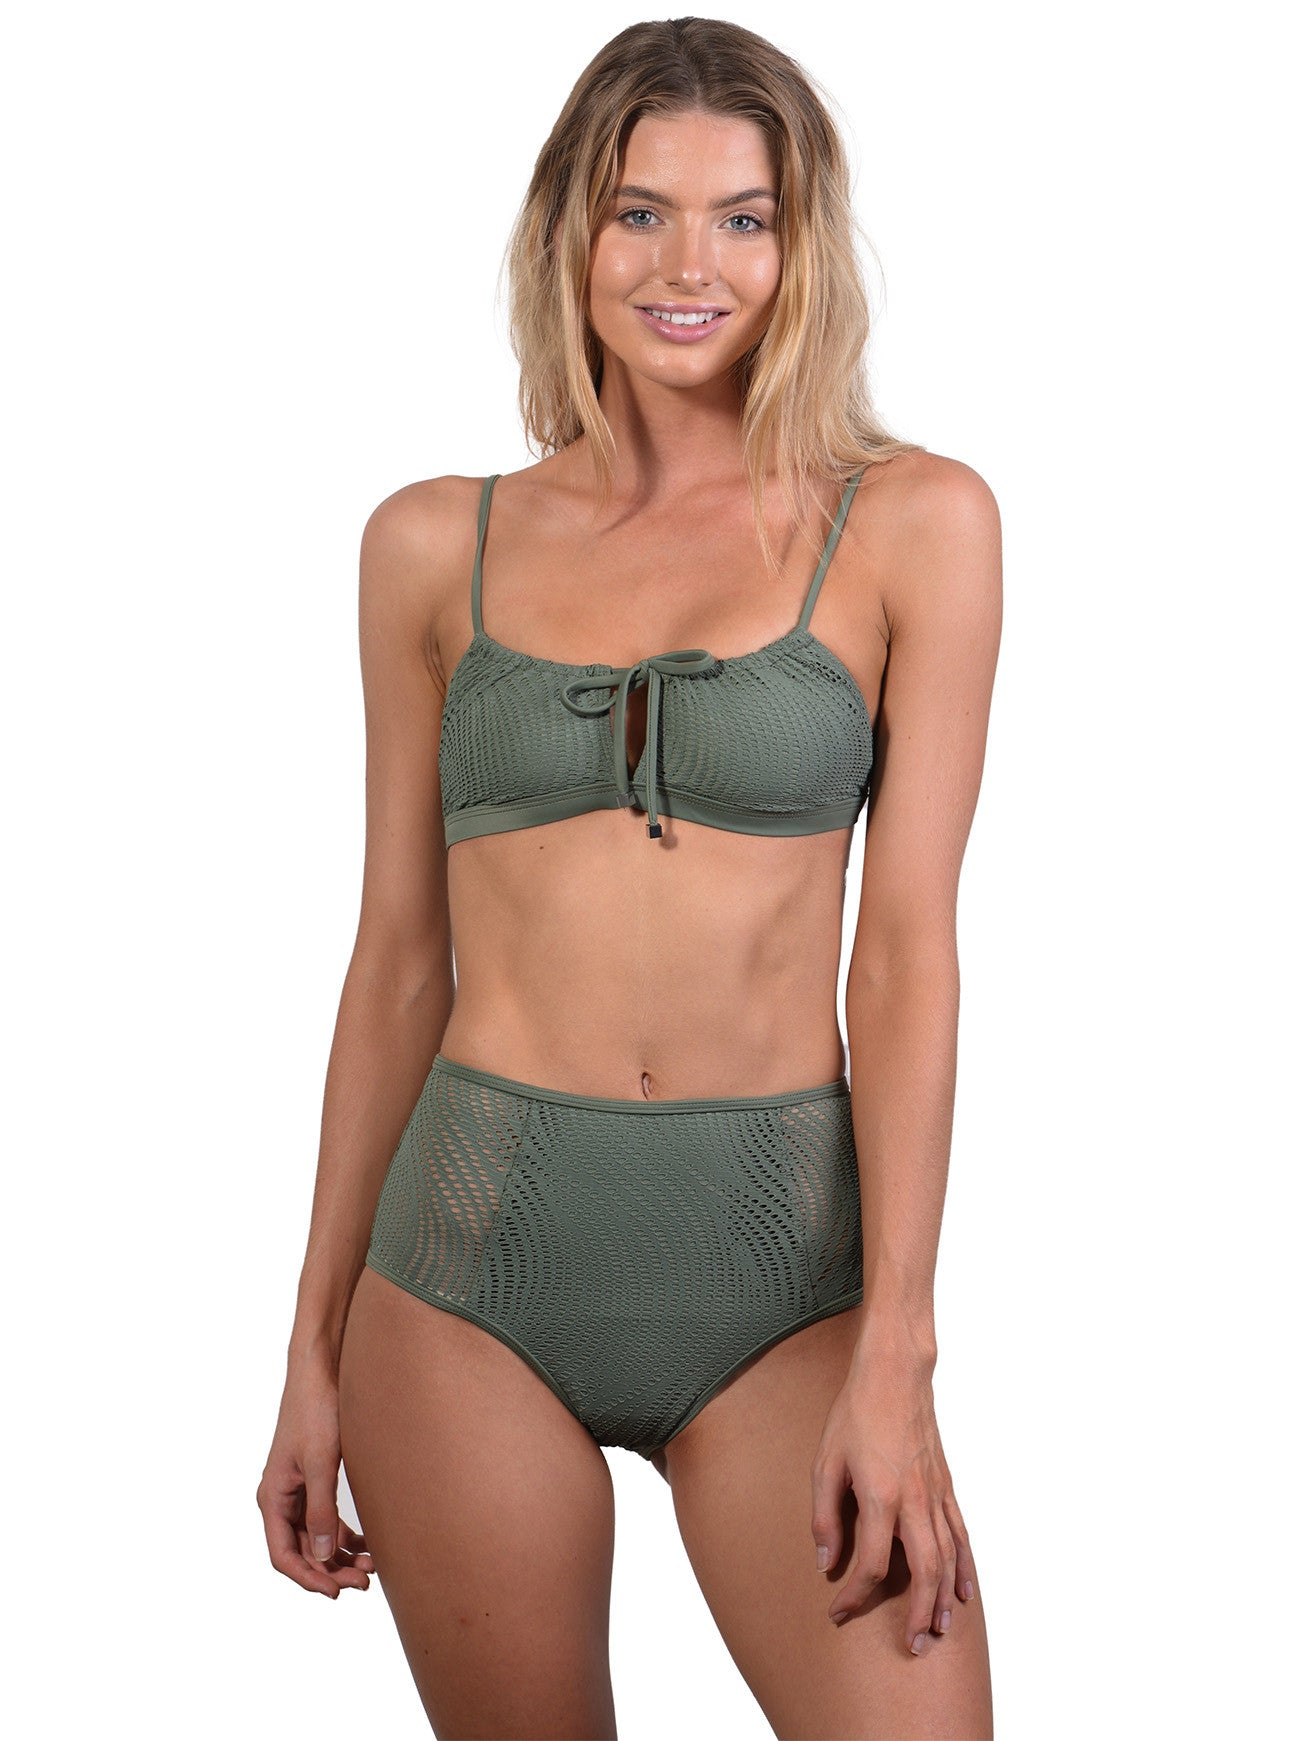 Gathered Crop Top in Khaki Santorini by Finch Swim